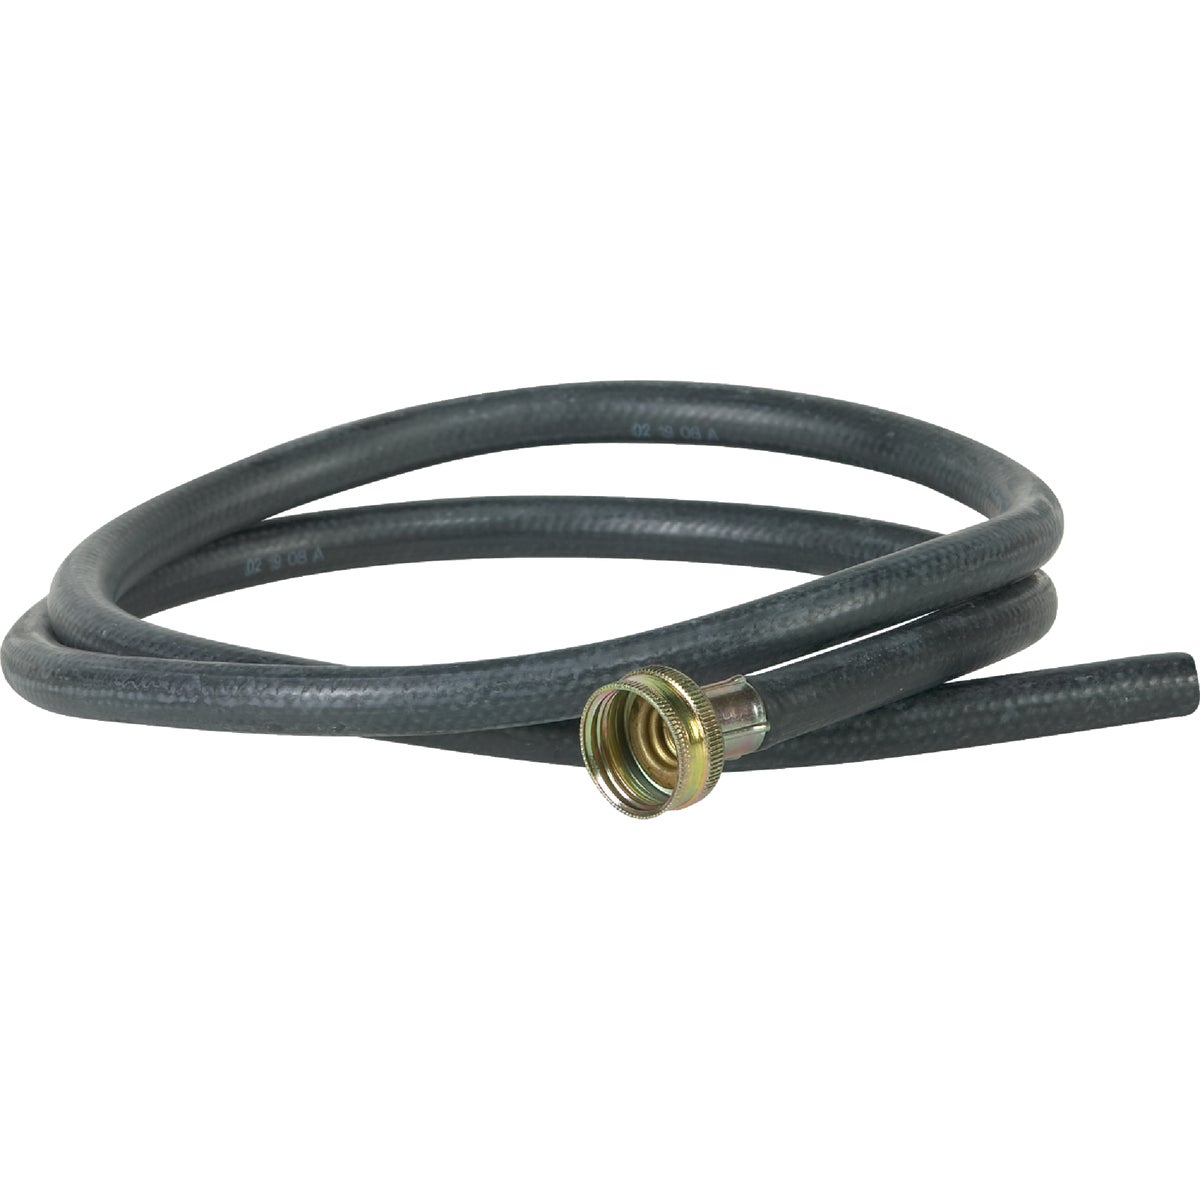 "3/4"" UTILITY HOSE - 412431 by Wm H Harvey Co"